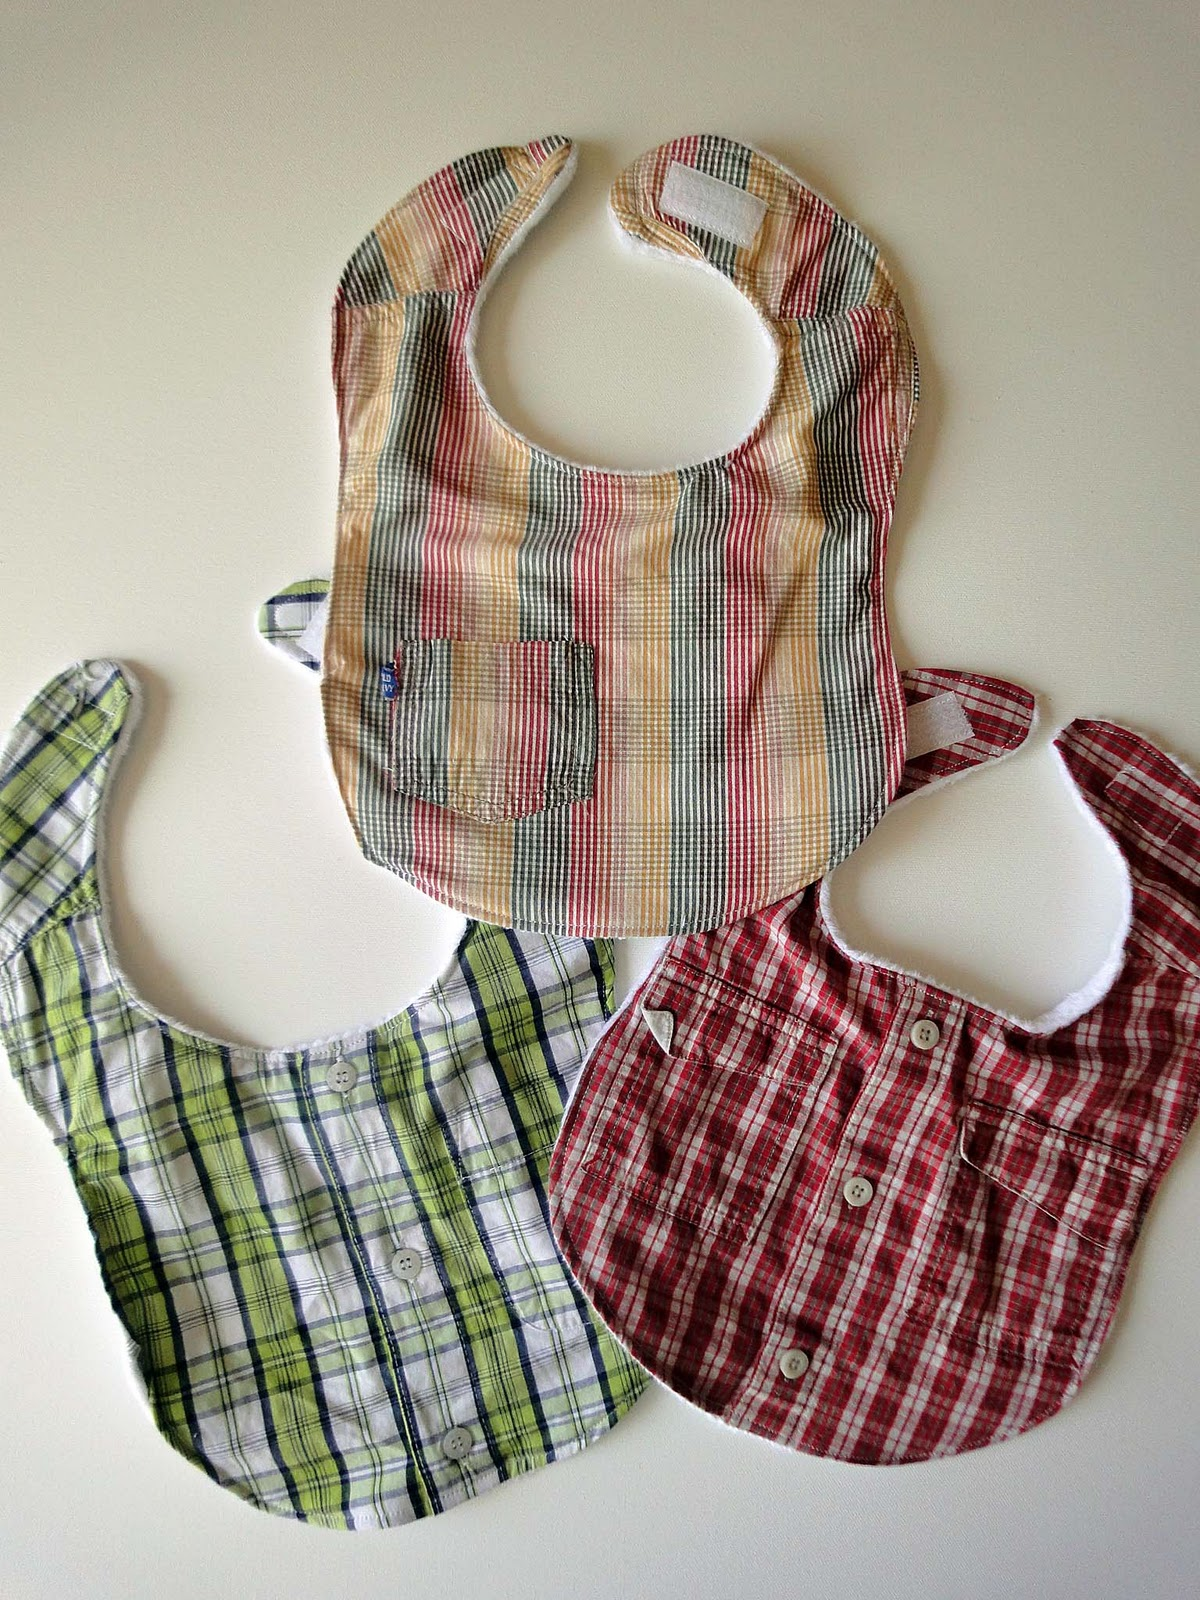 Baby Bibs out of old Shirts